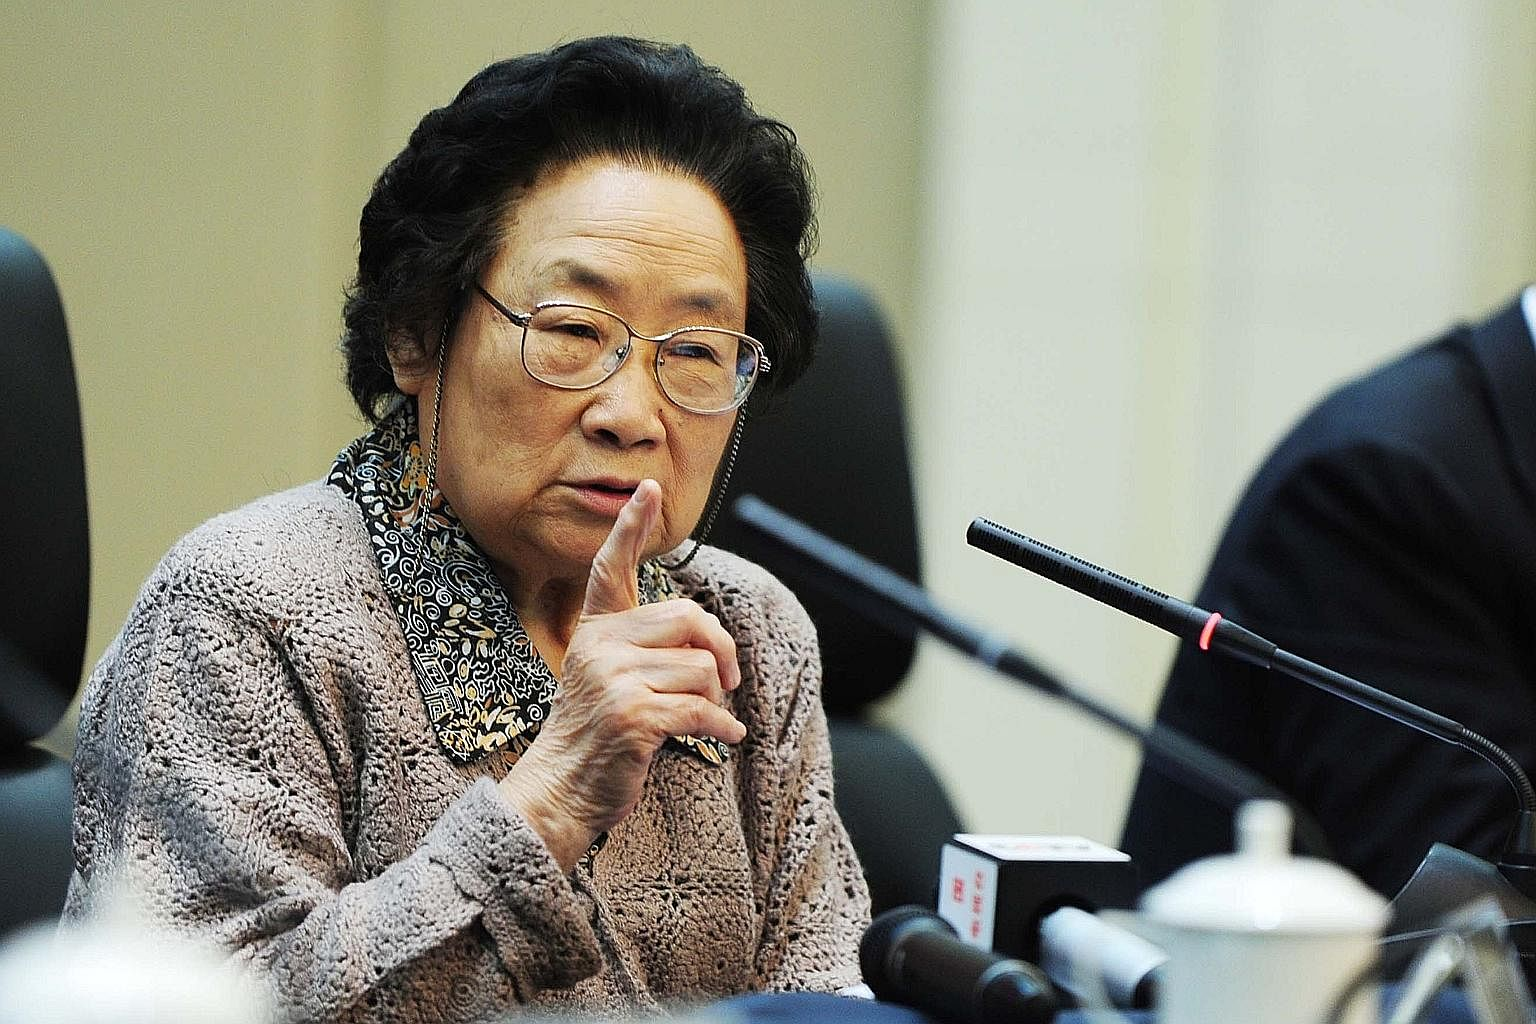 TCM got a boost last year when China's Tu Youyou (above) won the Nobel Prize in medicine for extracting the anti-malarial drug artemisinin from sweet wormwood.